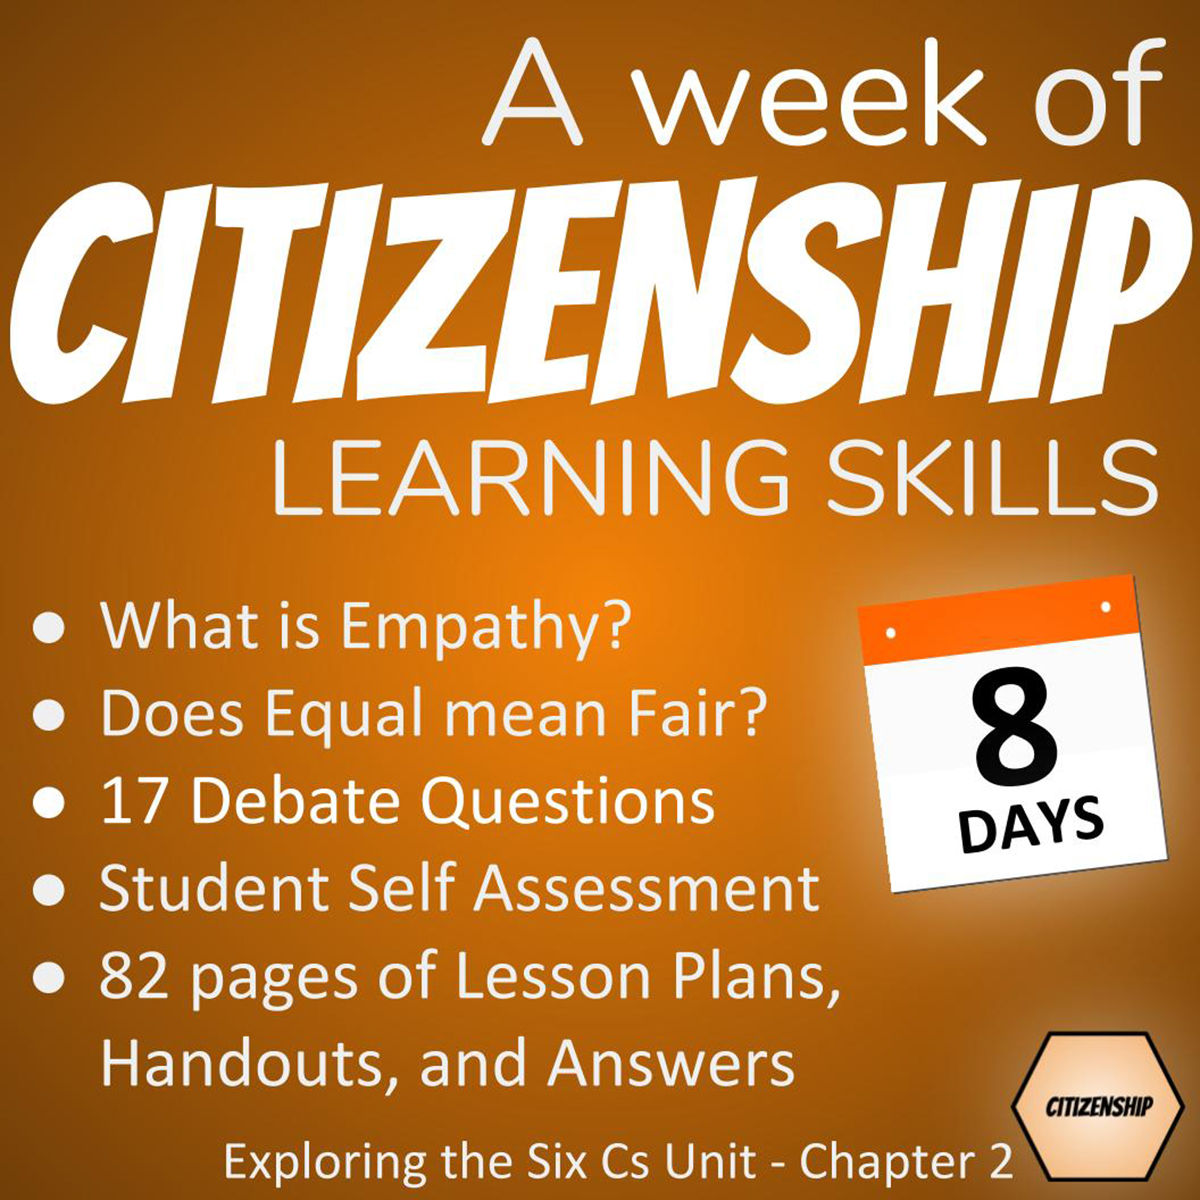 Good Citizenship Lesson Plans: A week of citizenship learning skills - 8 days - What is Empathy? Does Equal mean Fair? 17 Debate Questions. Student Self Assessment. 82 pages of Lesson Plans, Handouts and Answers